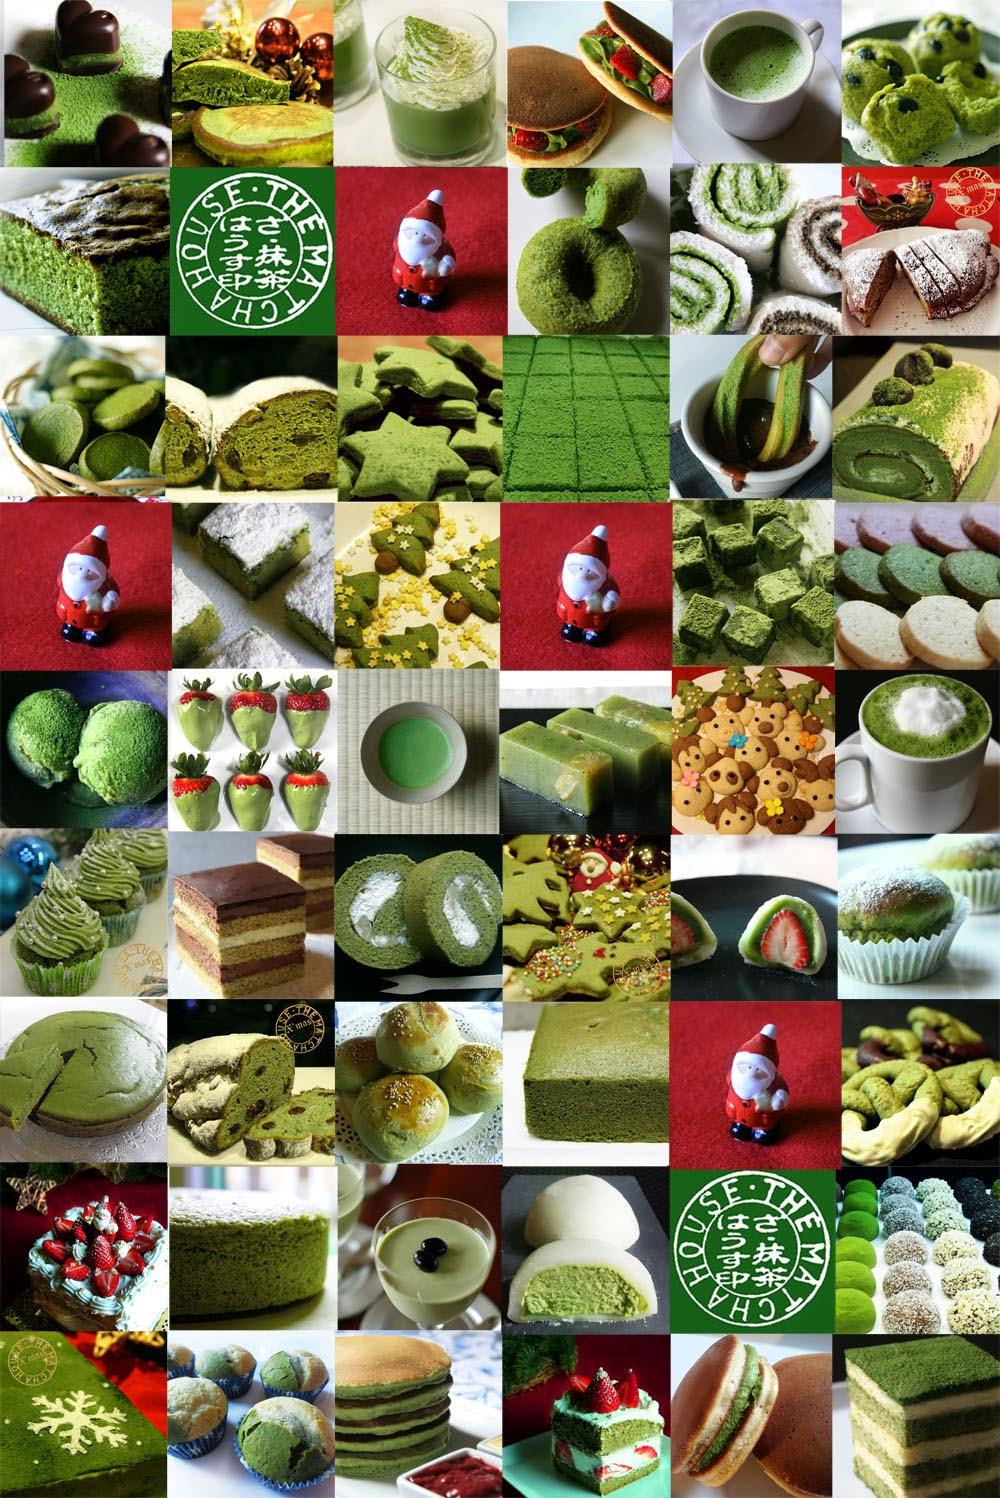 MERRY MATCHA X'MAS!! COOK WITH JAPANESE GREEN TEA MATCHA  IN THIS CHRISTMAS!!